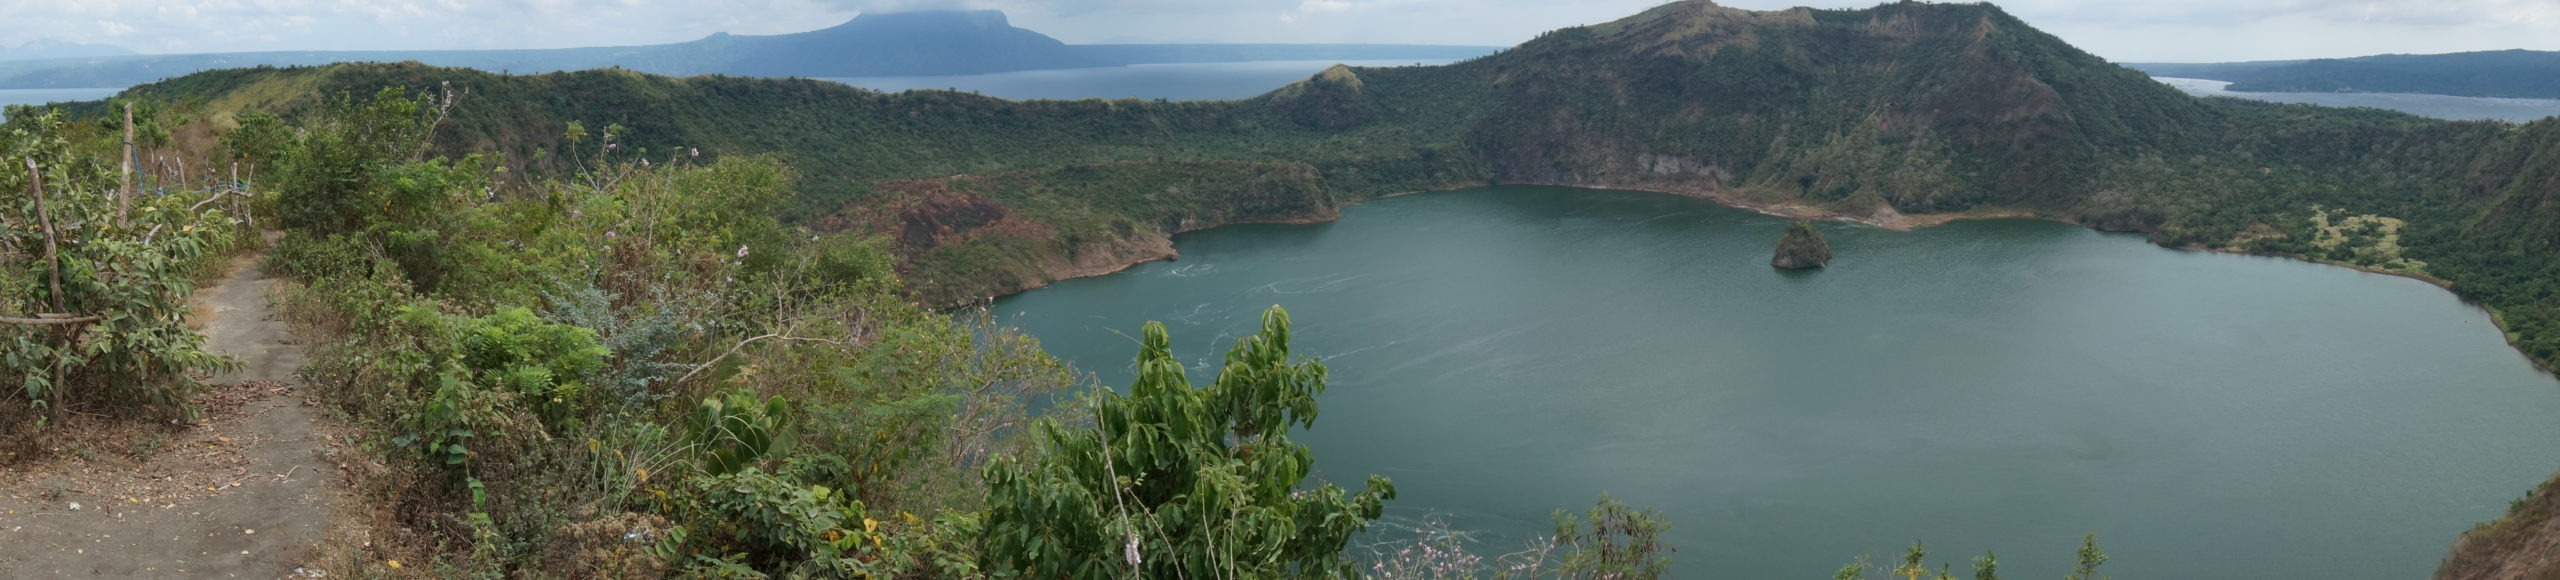 volcan Taal - Philippines